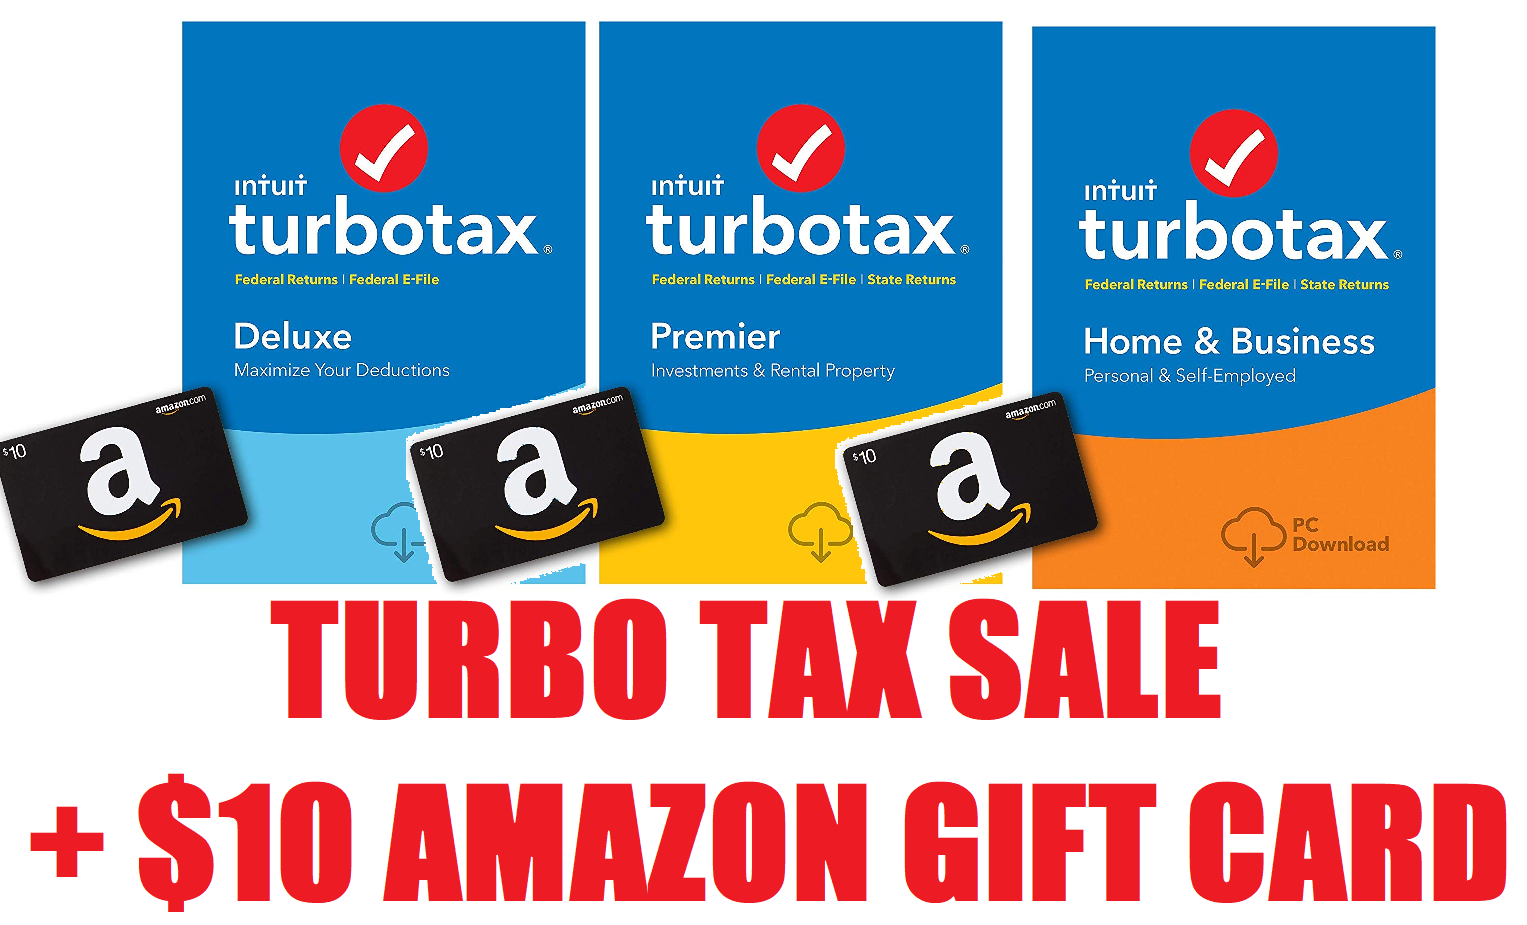 TurboTax 2018 Tax Software Sale + Extra $10 Gift Card Back! TurboTax